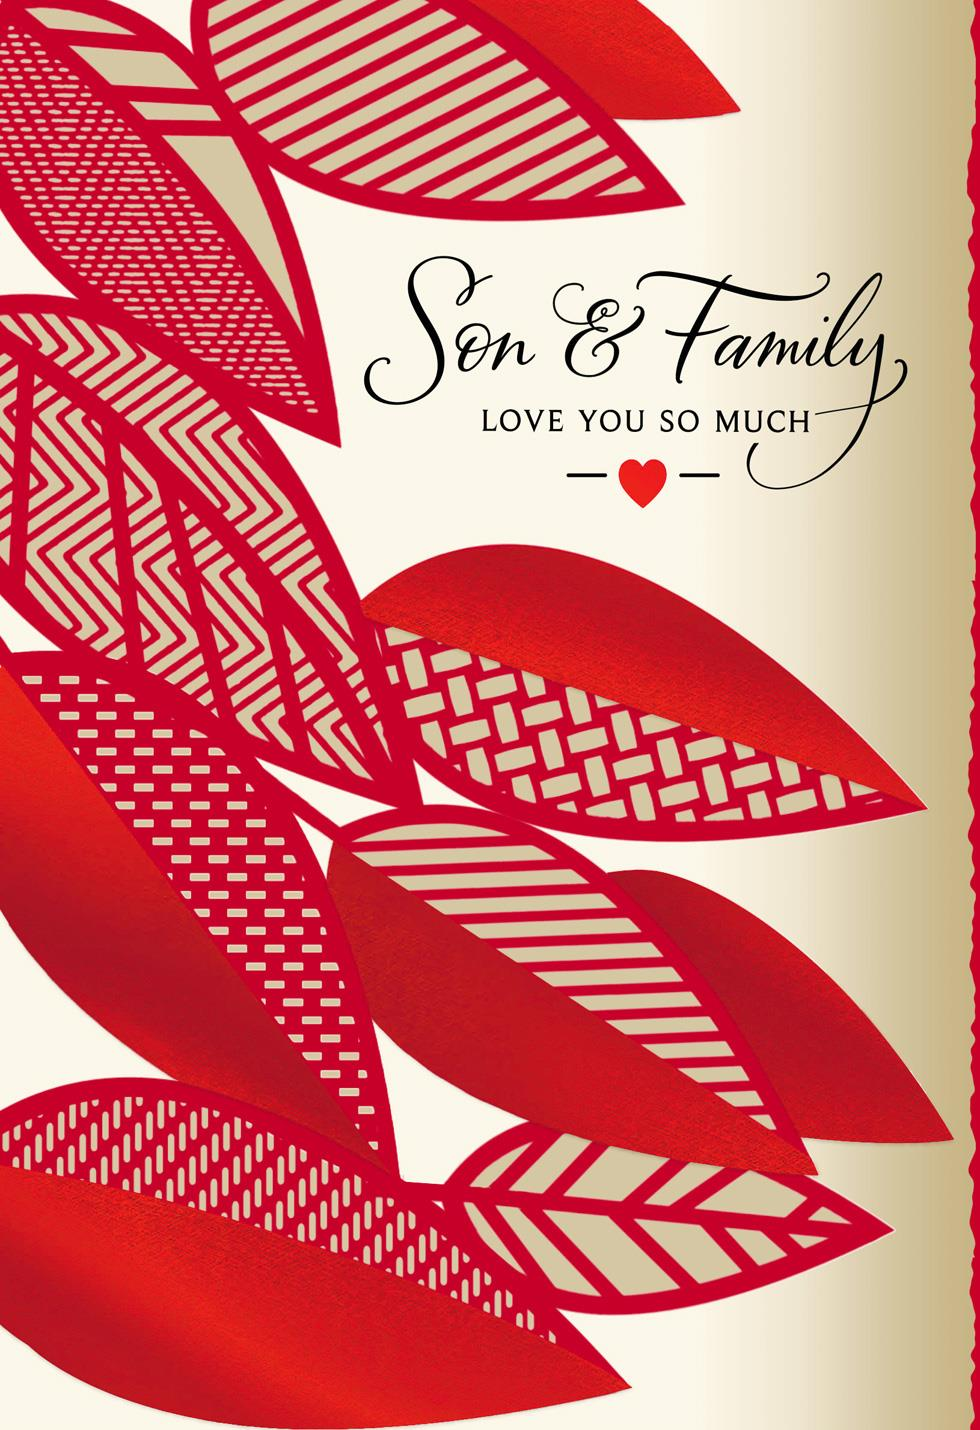 Love You So Much Valentine S Day Card For Son And Family